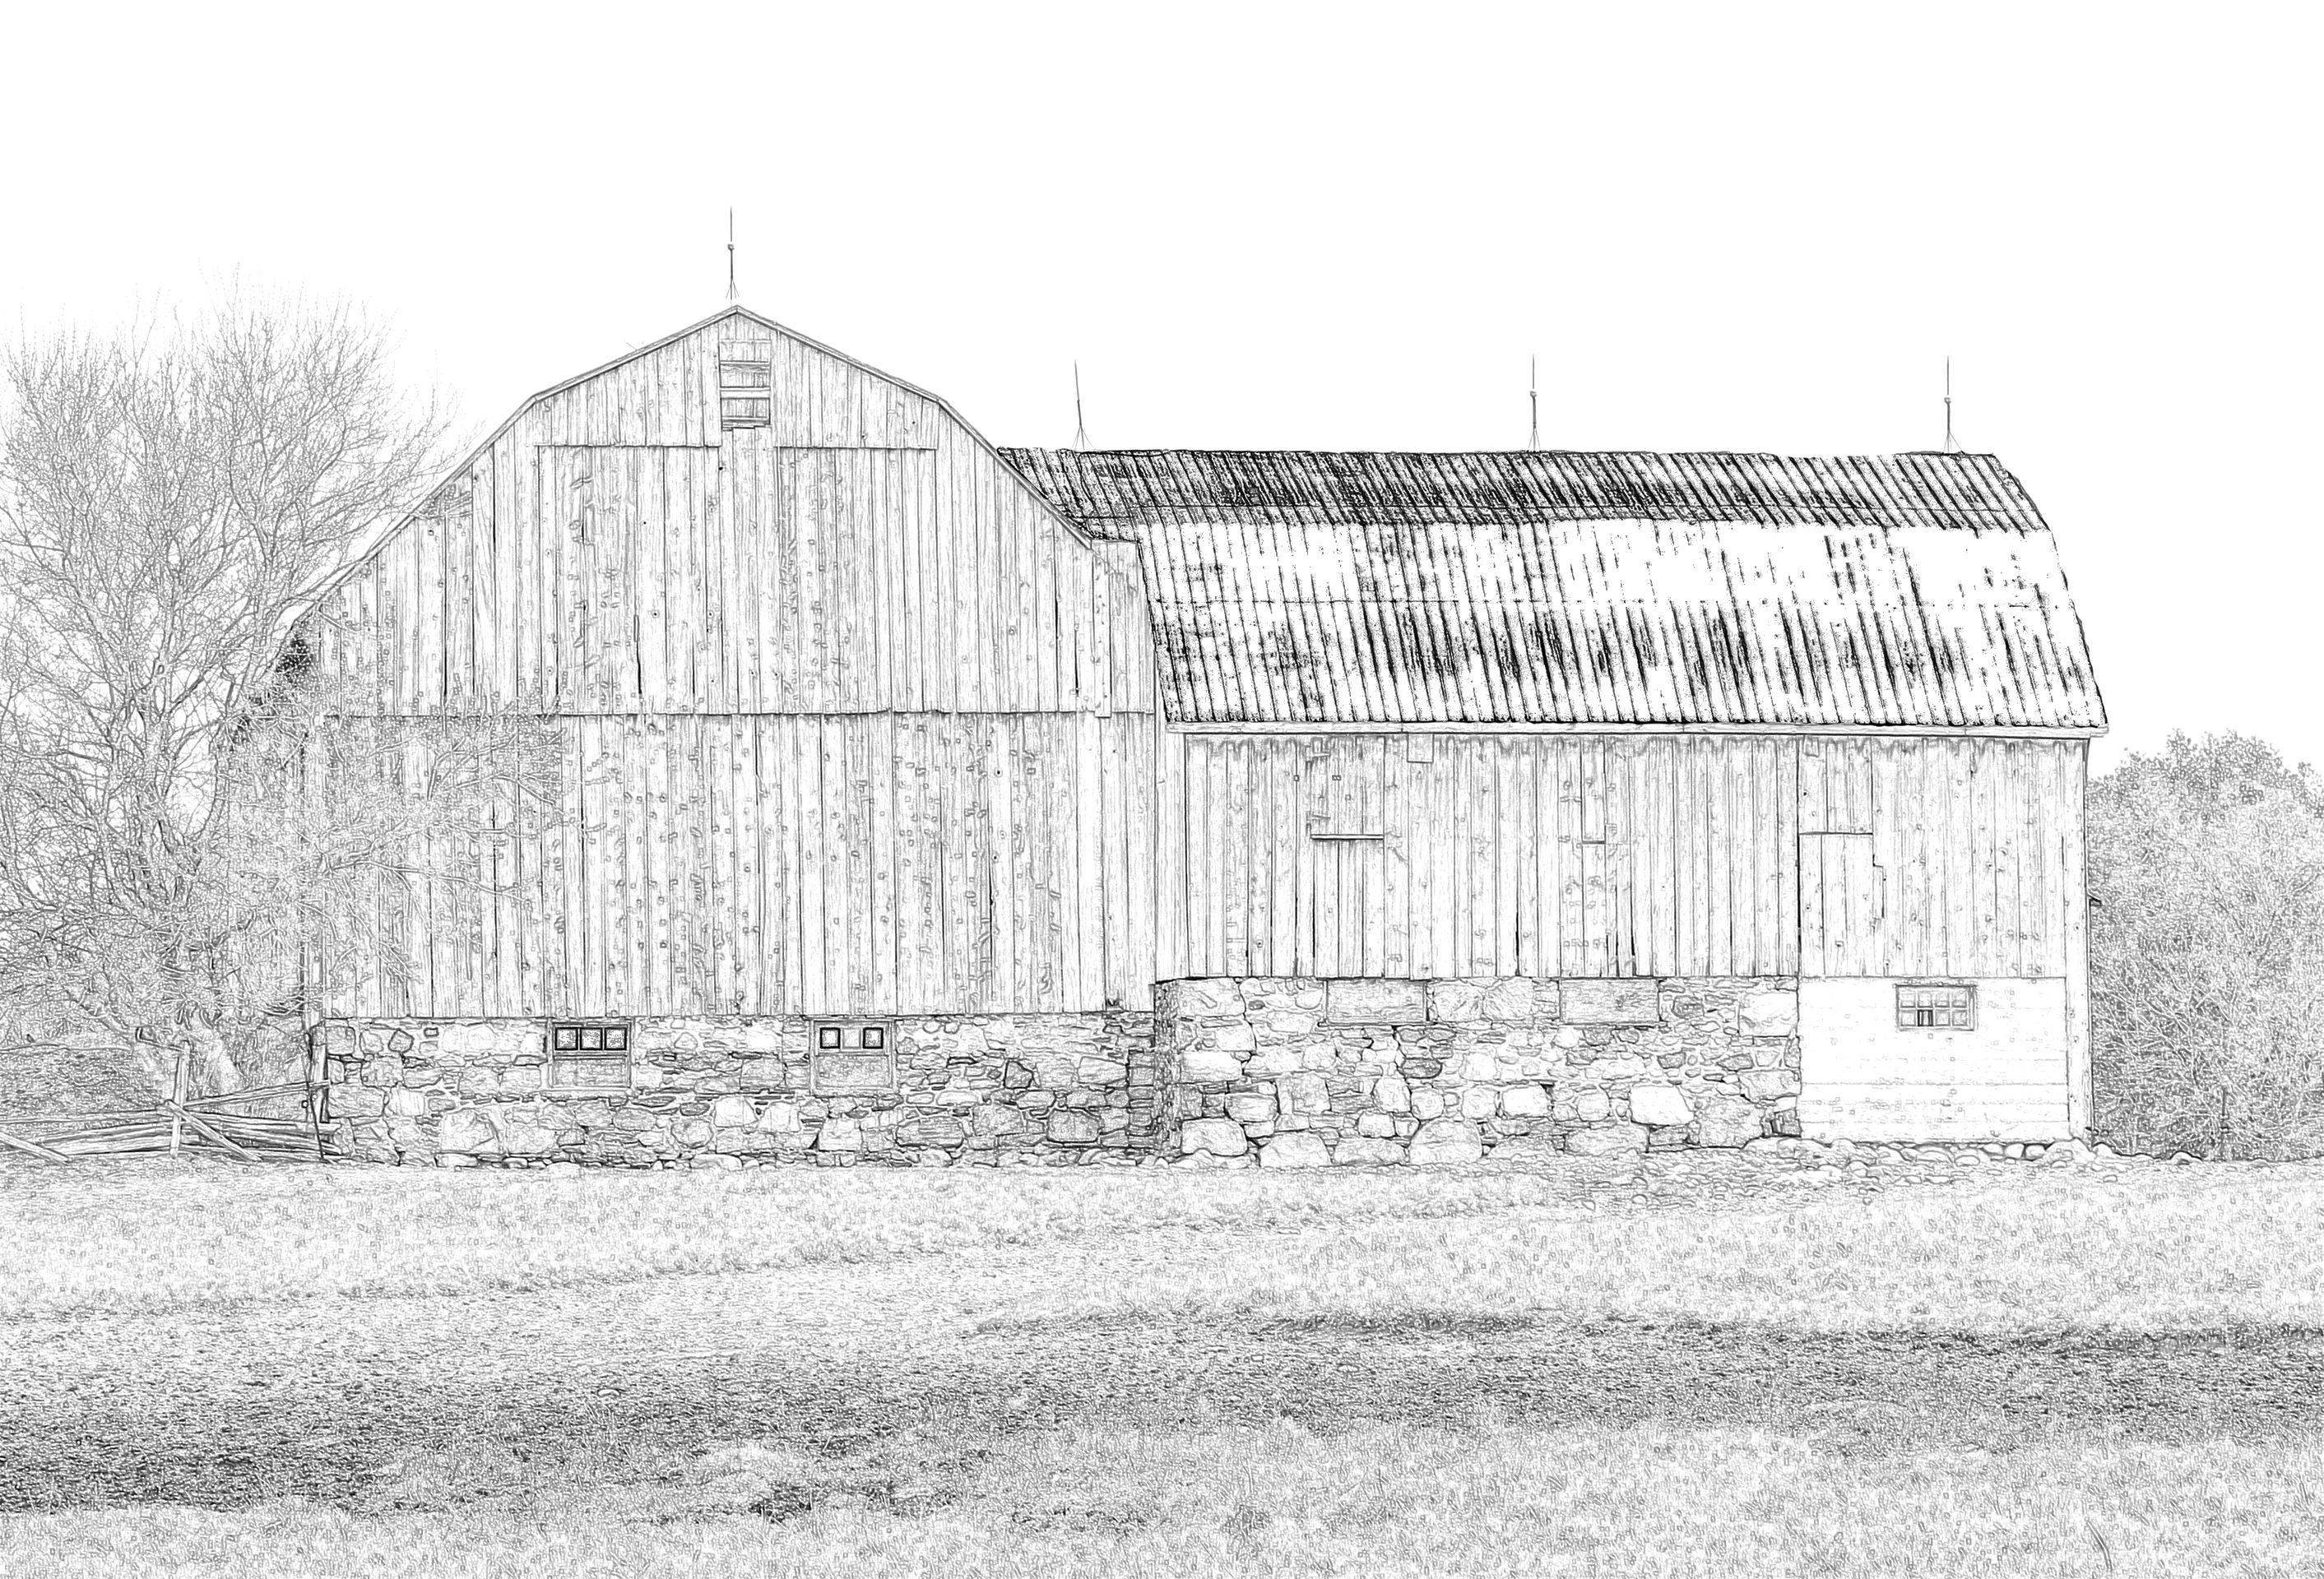 Barn Sketchie